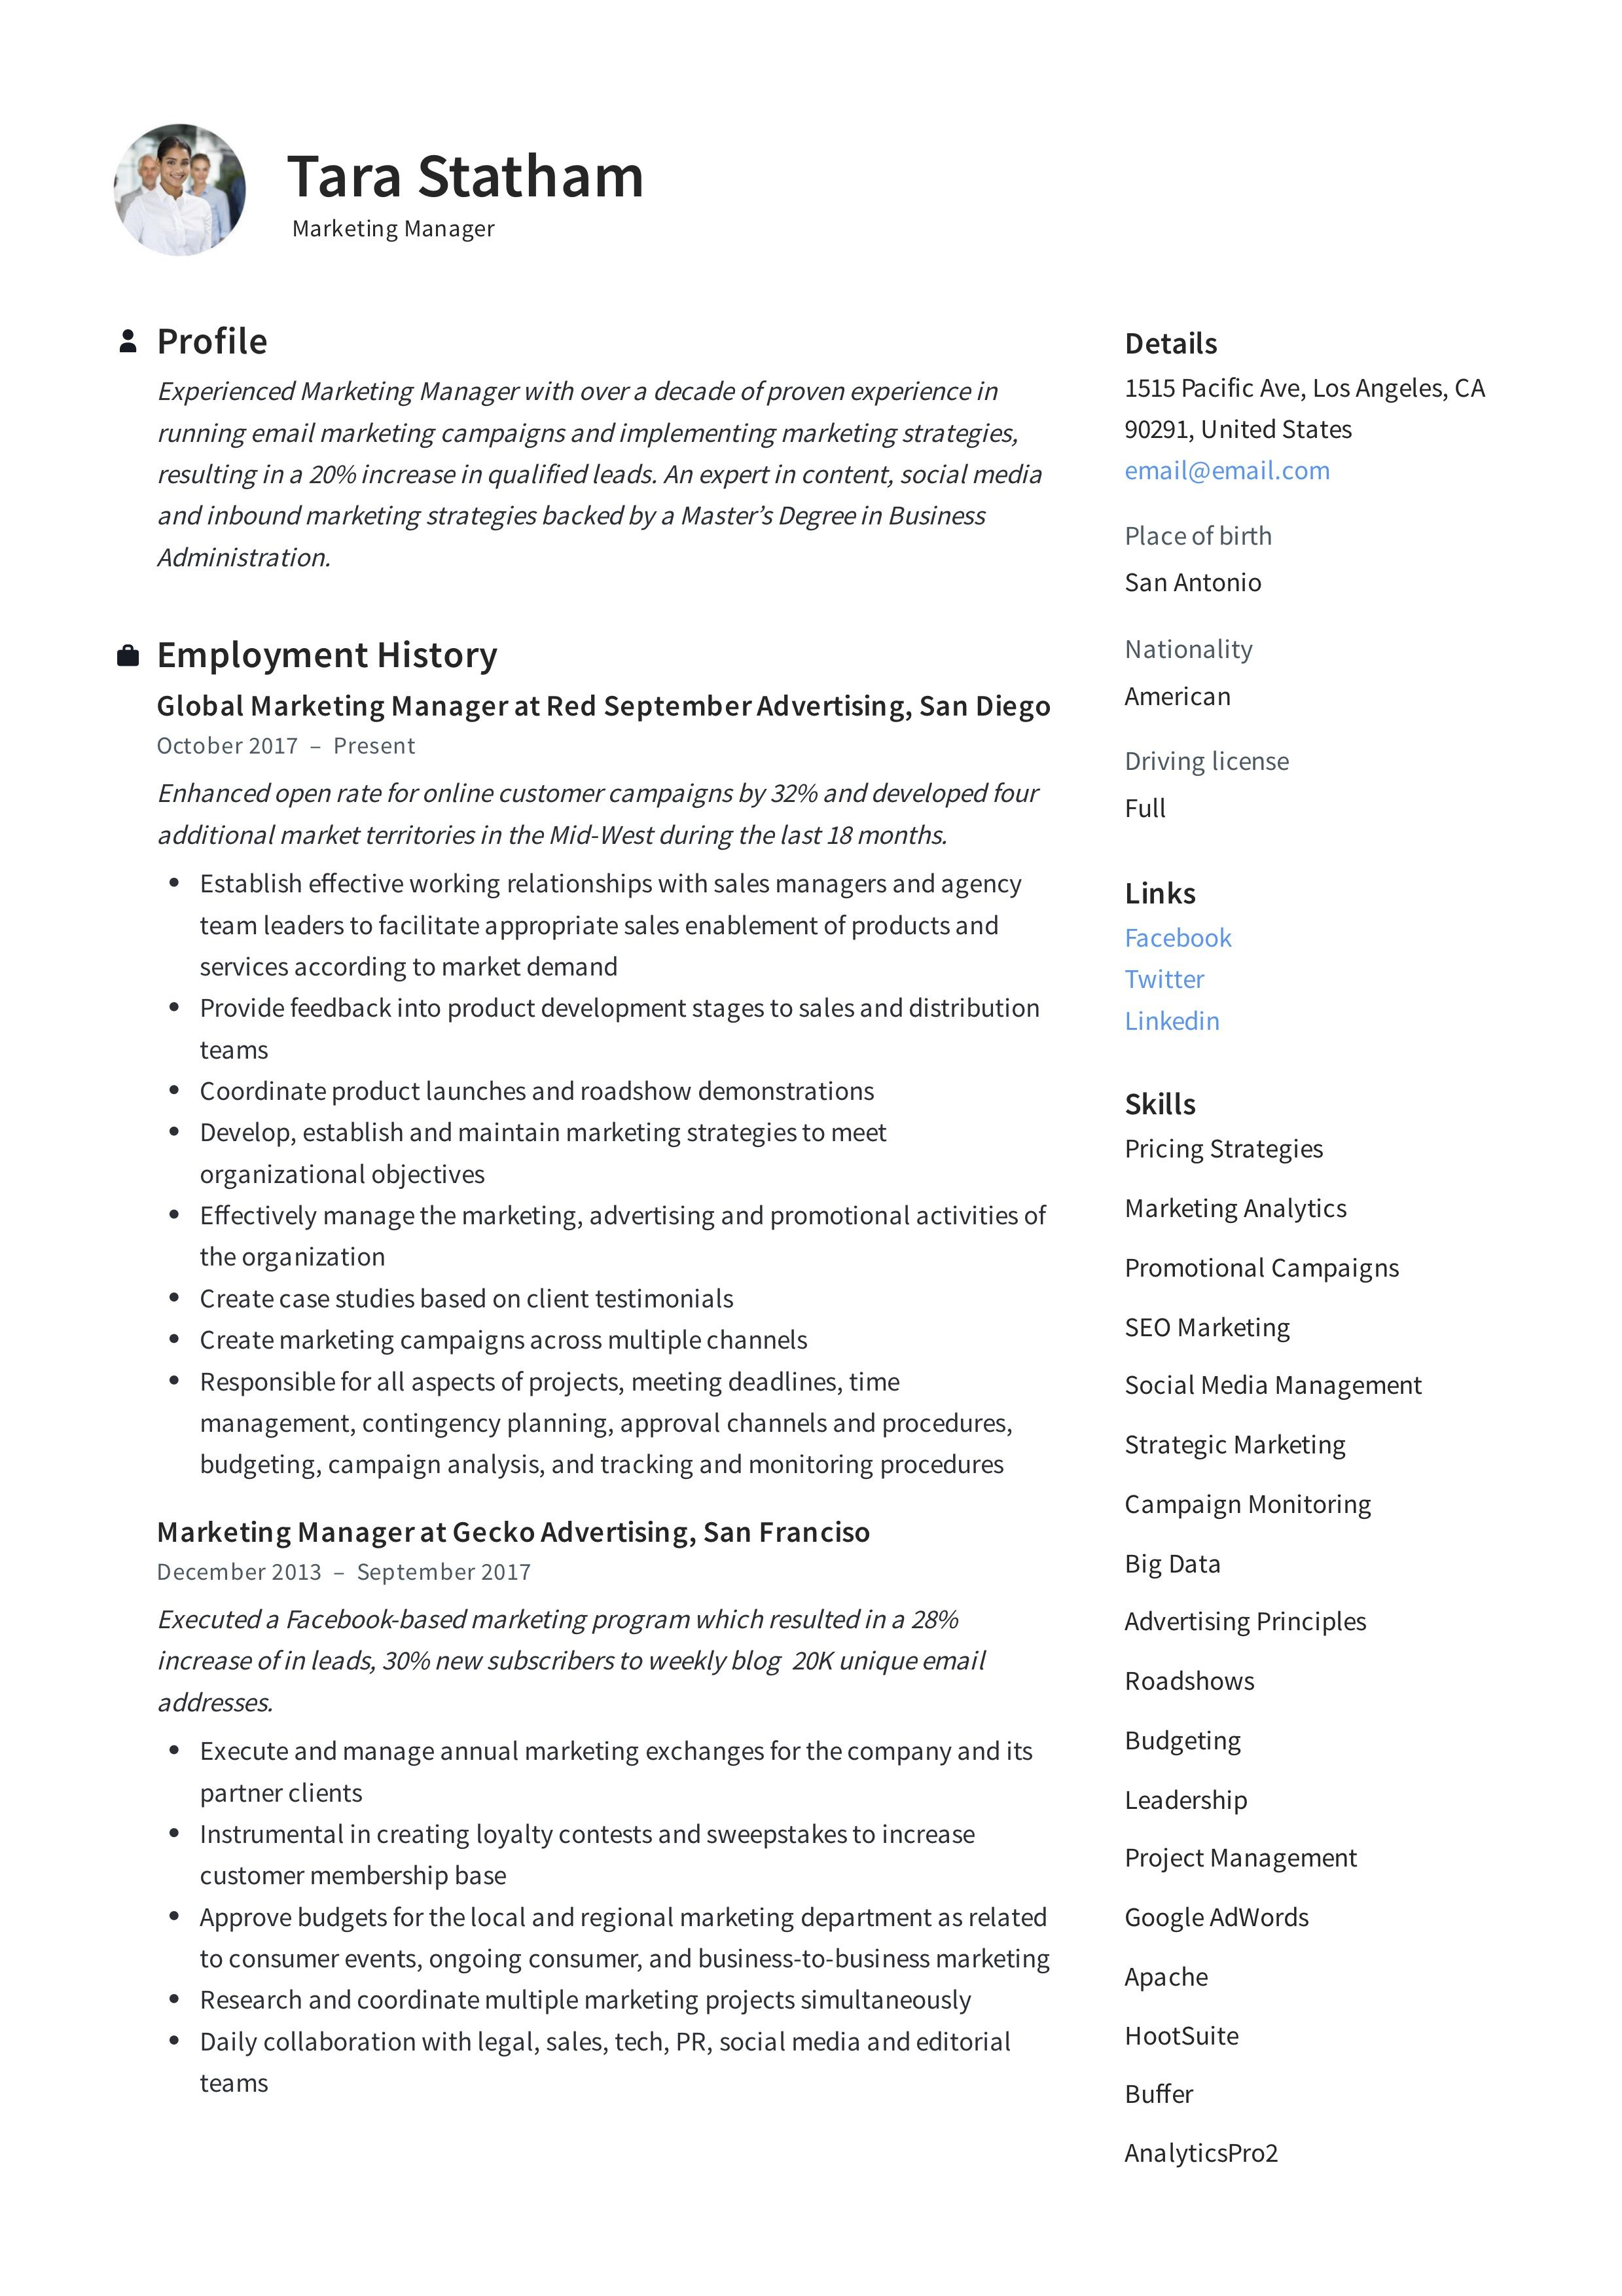 Marketing manager resume writing guide in 2020